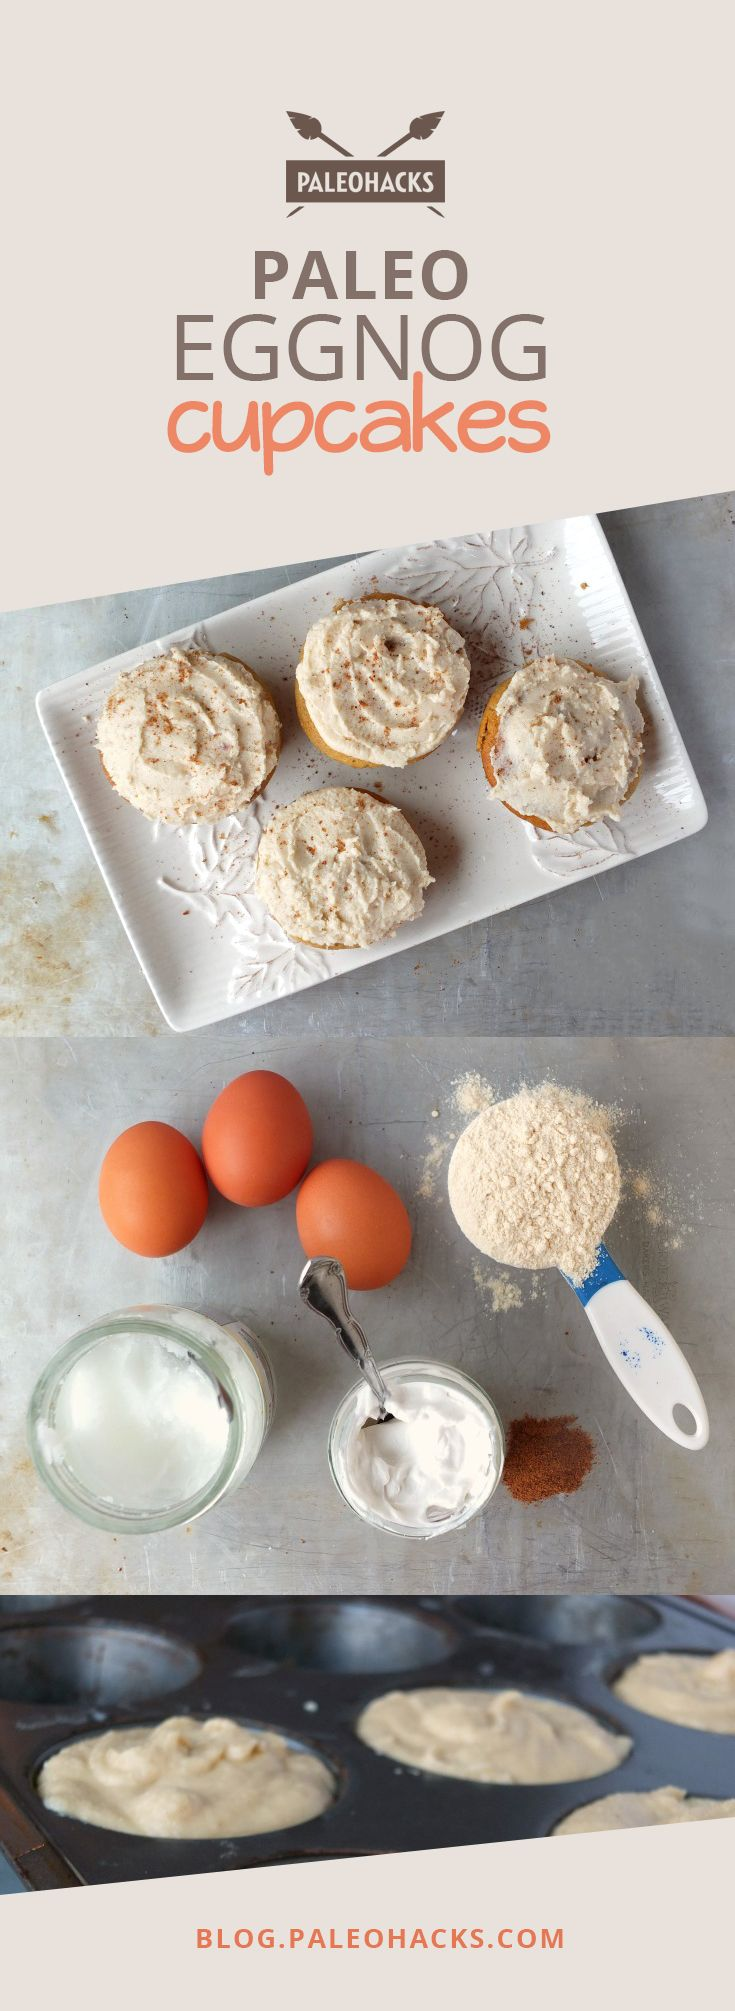 Fluffy and light #Paleo eggnog cupcakes! For the full recipe visit us at: http://paleo.co/eggnogCC #paleohacks